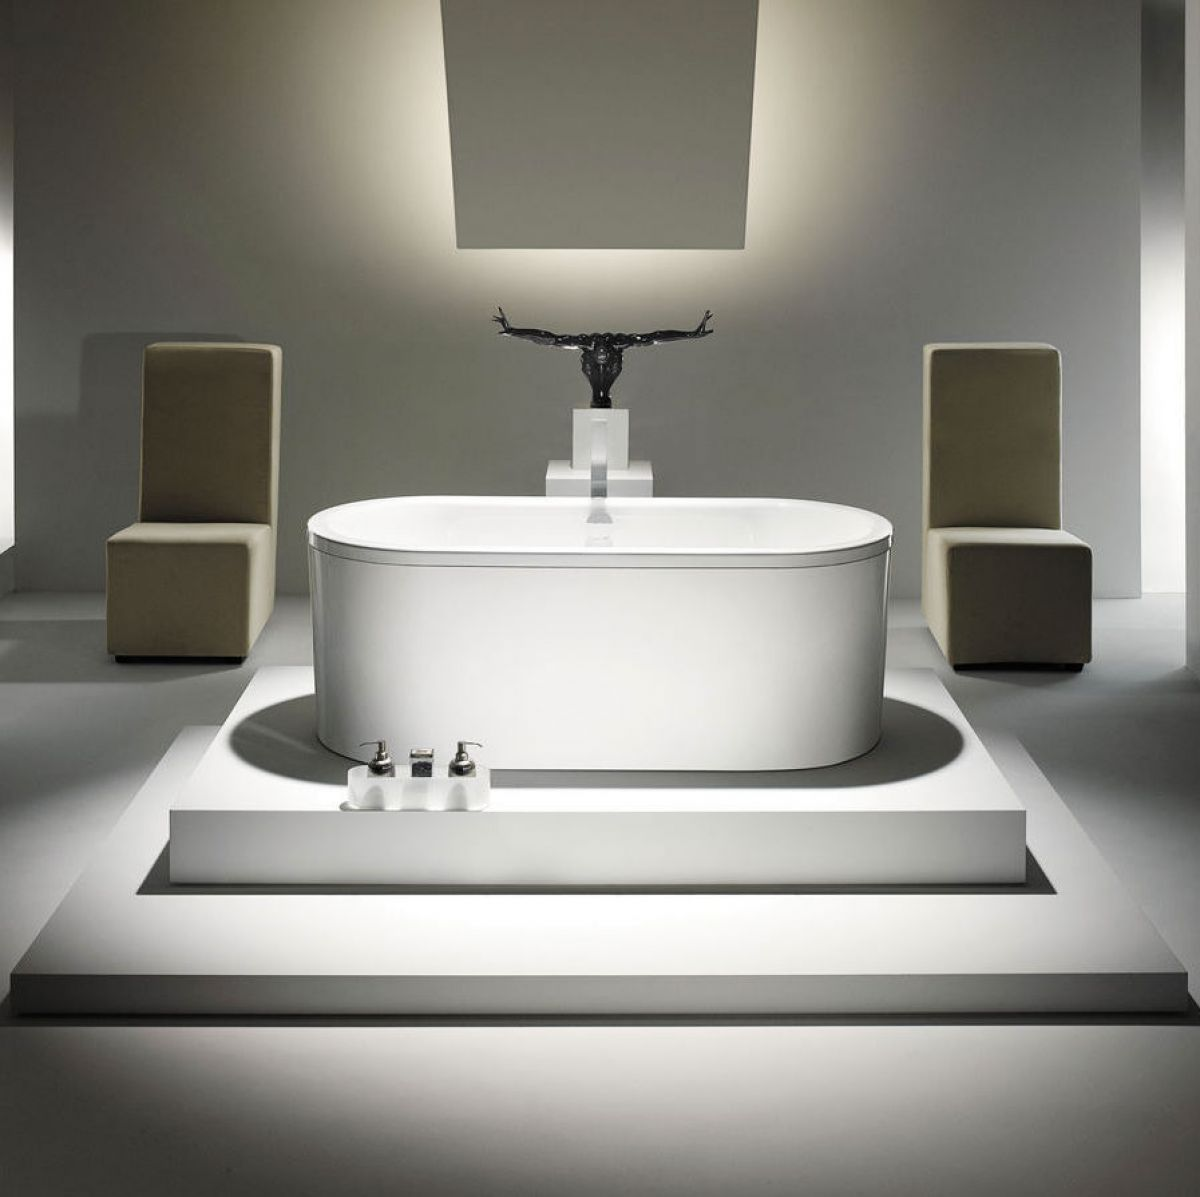 Kaldewei centro duo oval freestanding bath uk bathrooms for Bathroom bath